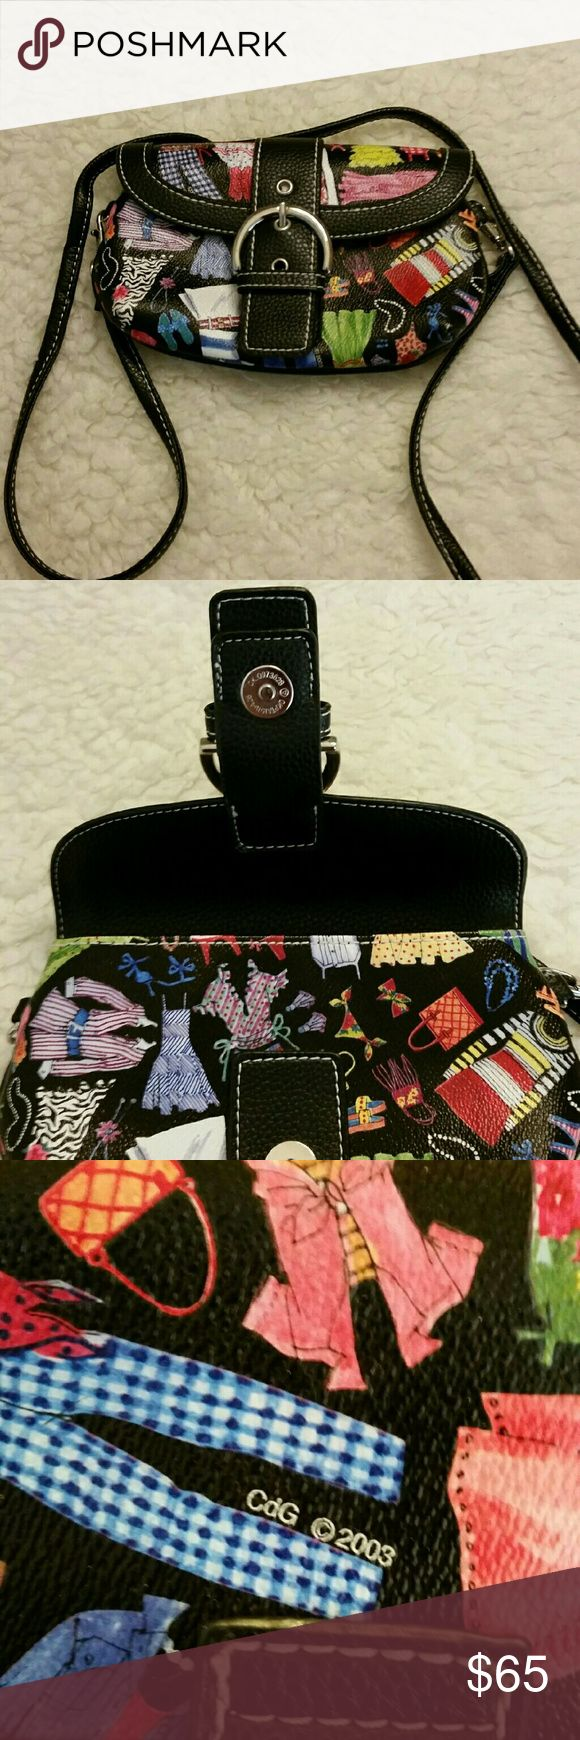 ❤❤❤Sydney Love ❤❤❤ Cross Body Hand bag If you are looking for a small eclectic looking Cross Body . Then this is your bag. Never used with a gorgeous pattern of dresses snap front with a faux buckle on front.  Perfect for carrying cell phone lipstick and credit cards. Sydney Love  Bags Shoulder Bags